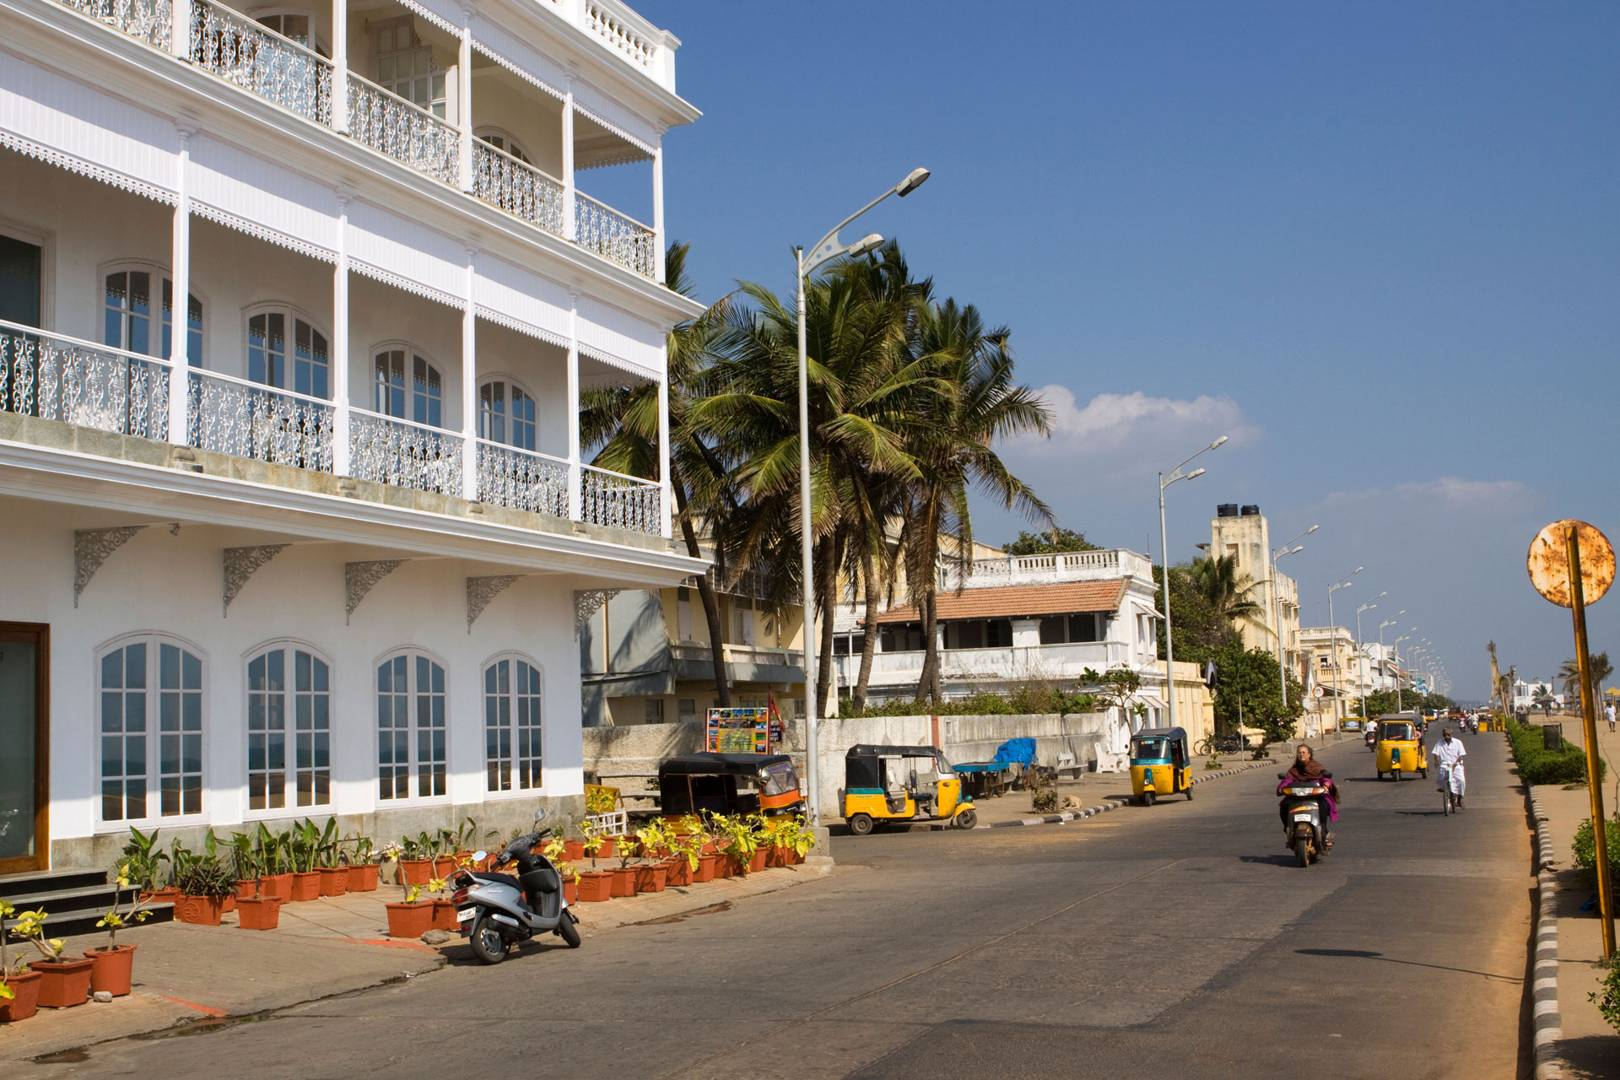 Pondicherry The Hottest New Hotels Bars Restaurants S And Sights Cn Traveller